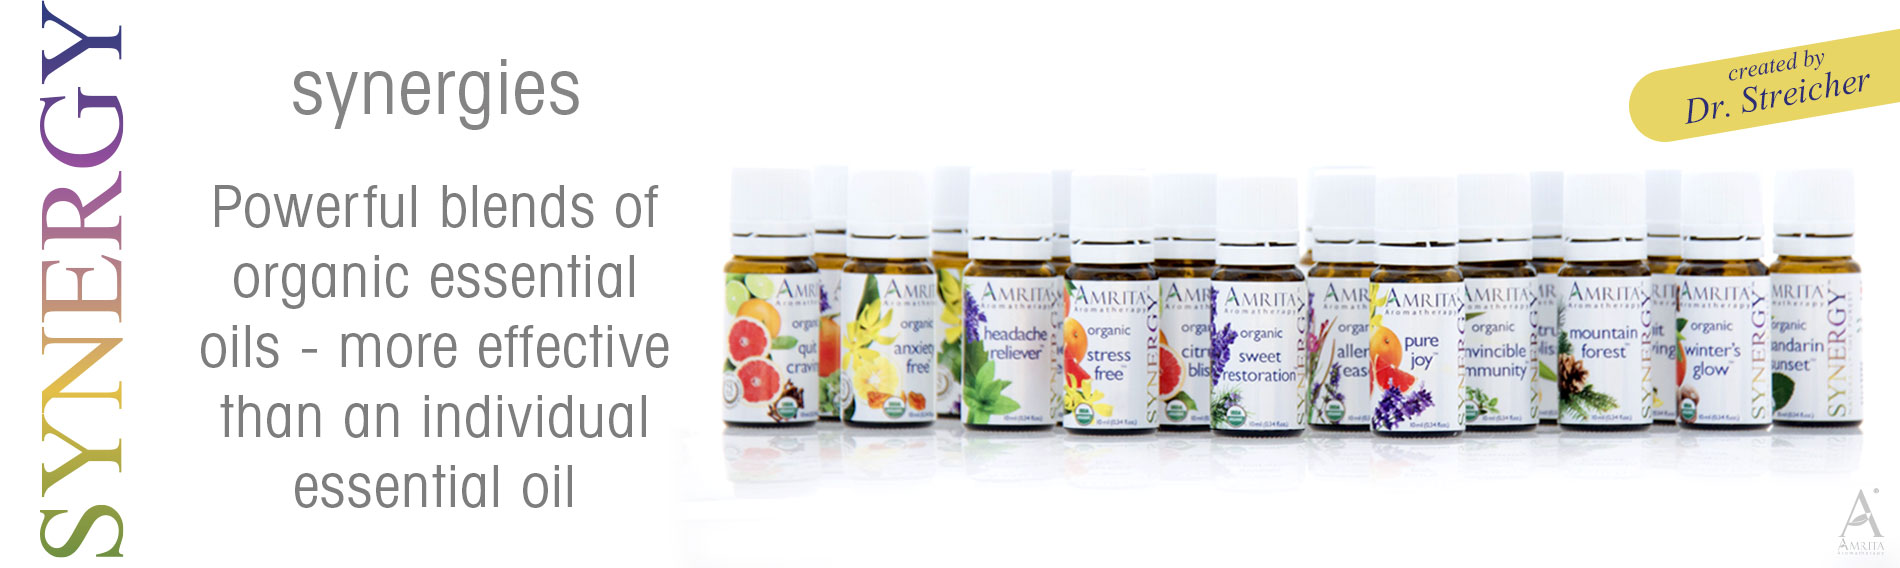 amrita-organic-synergy-blends-essential-oils